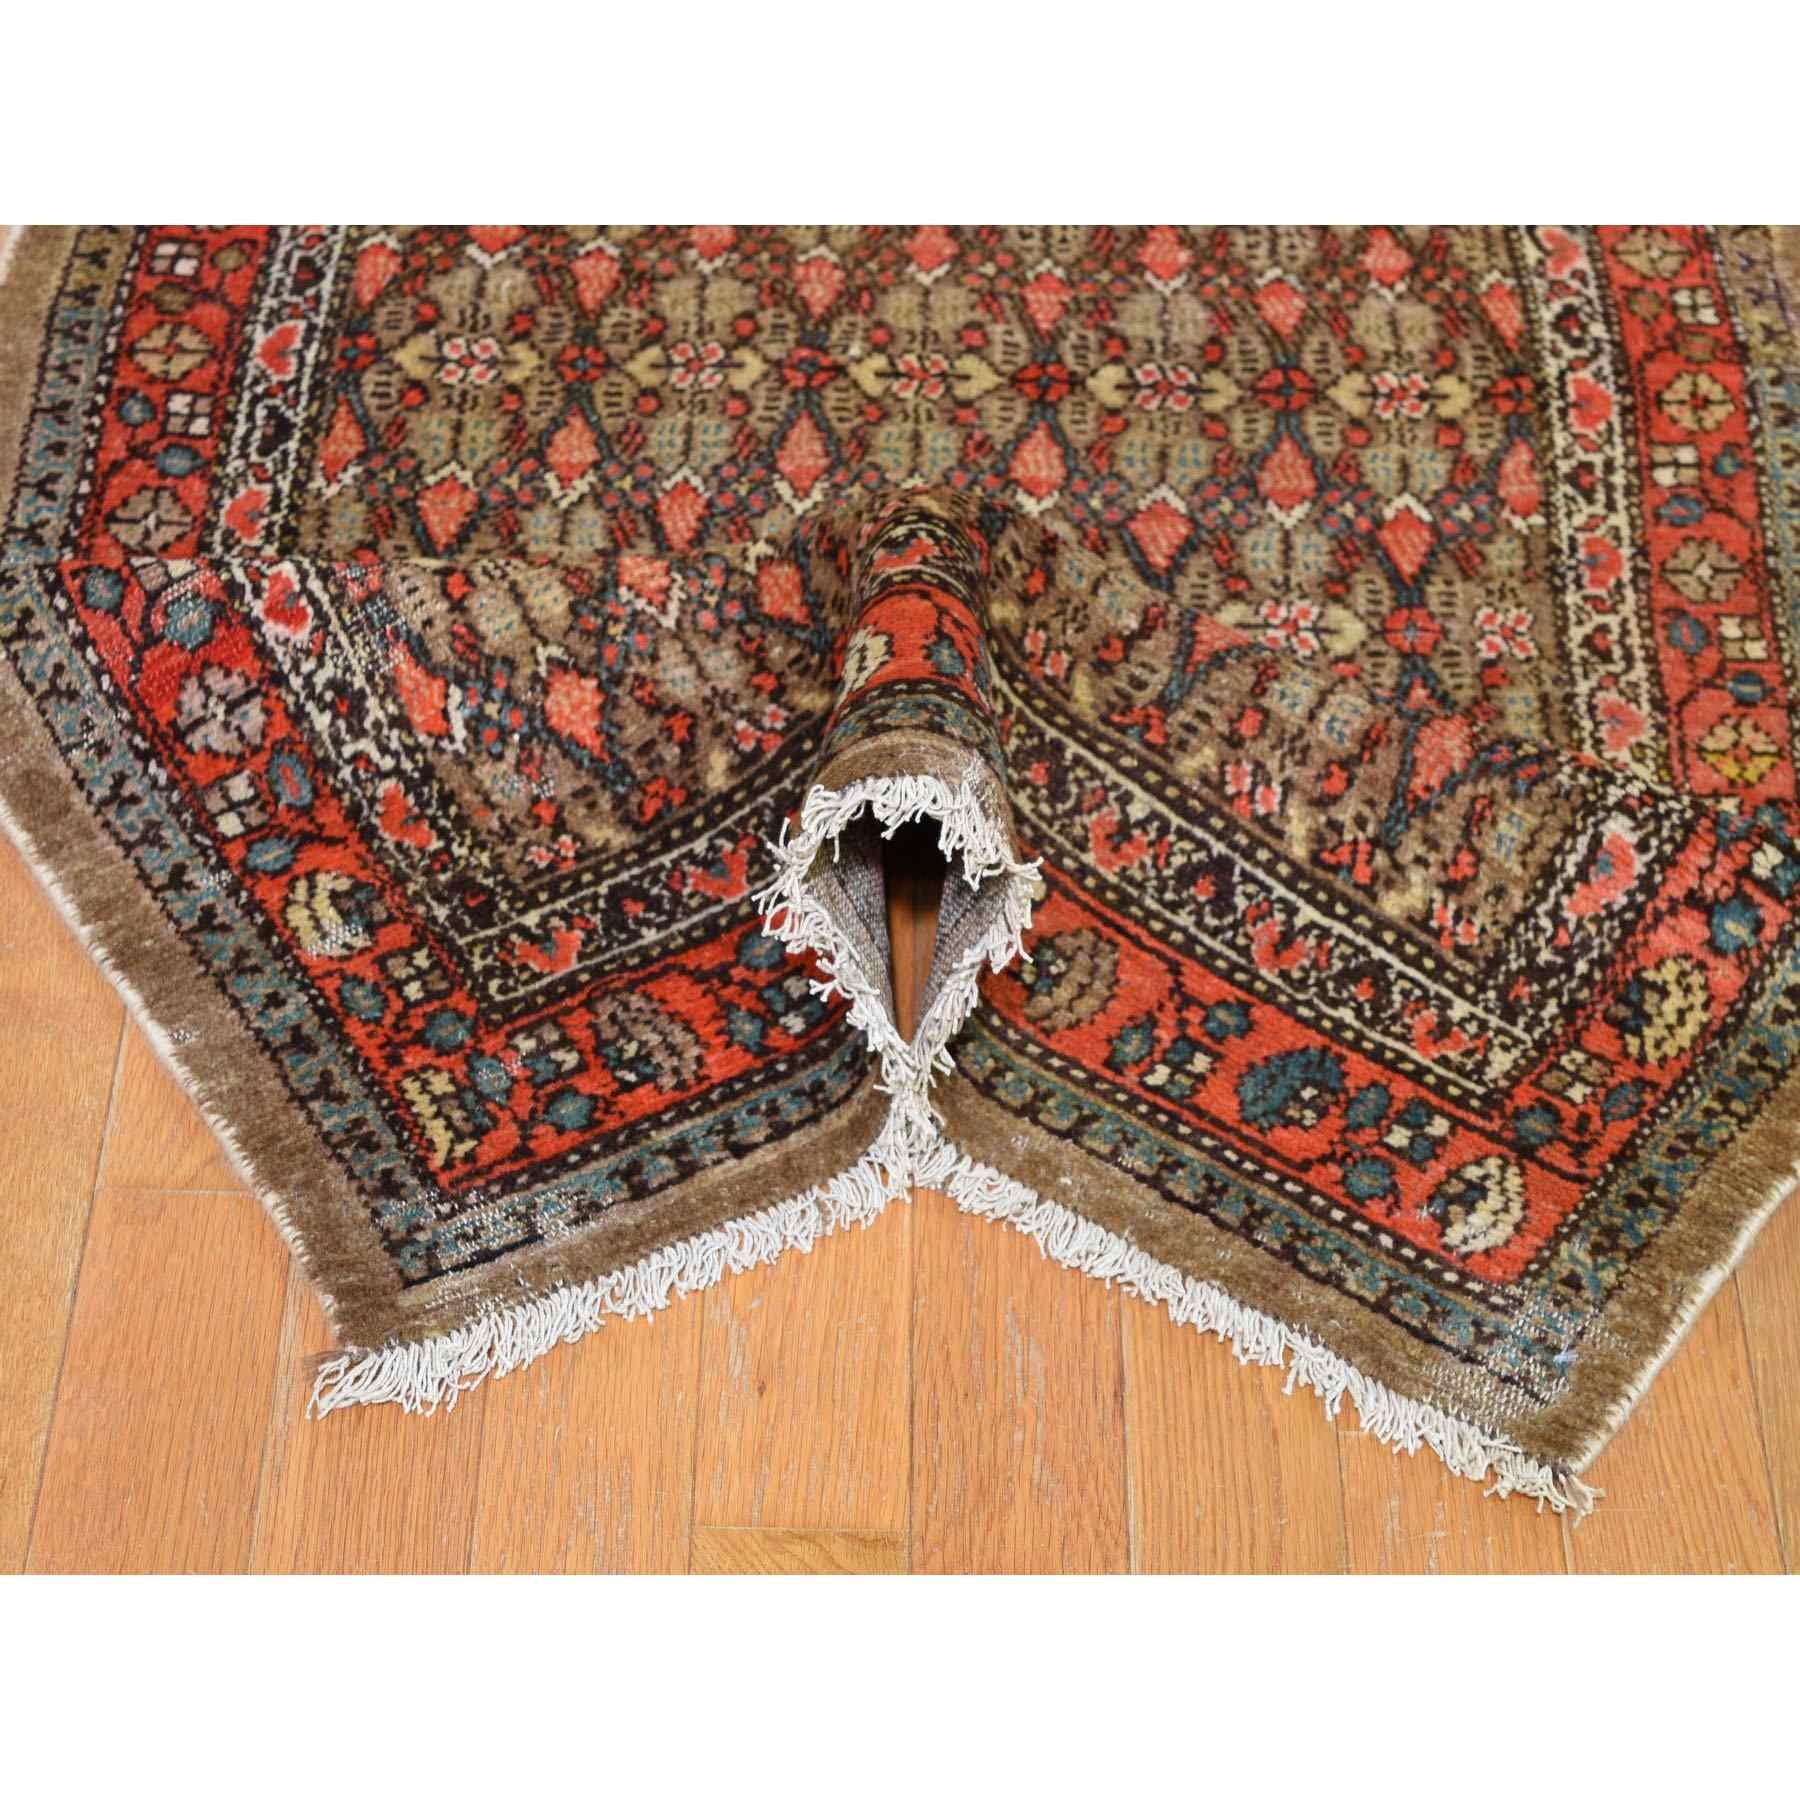 Antique-Hand-Knotted-Rug-235415